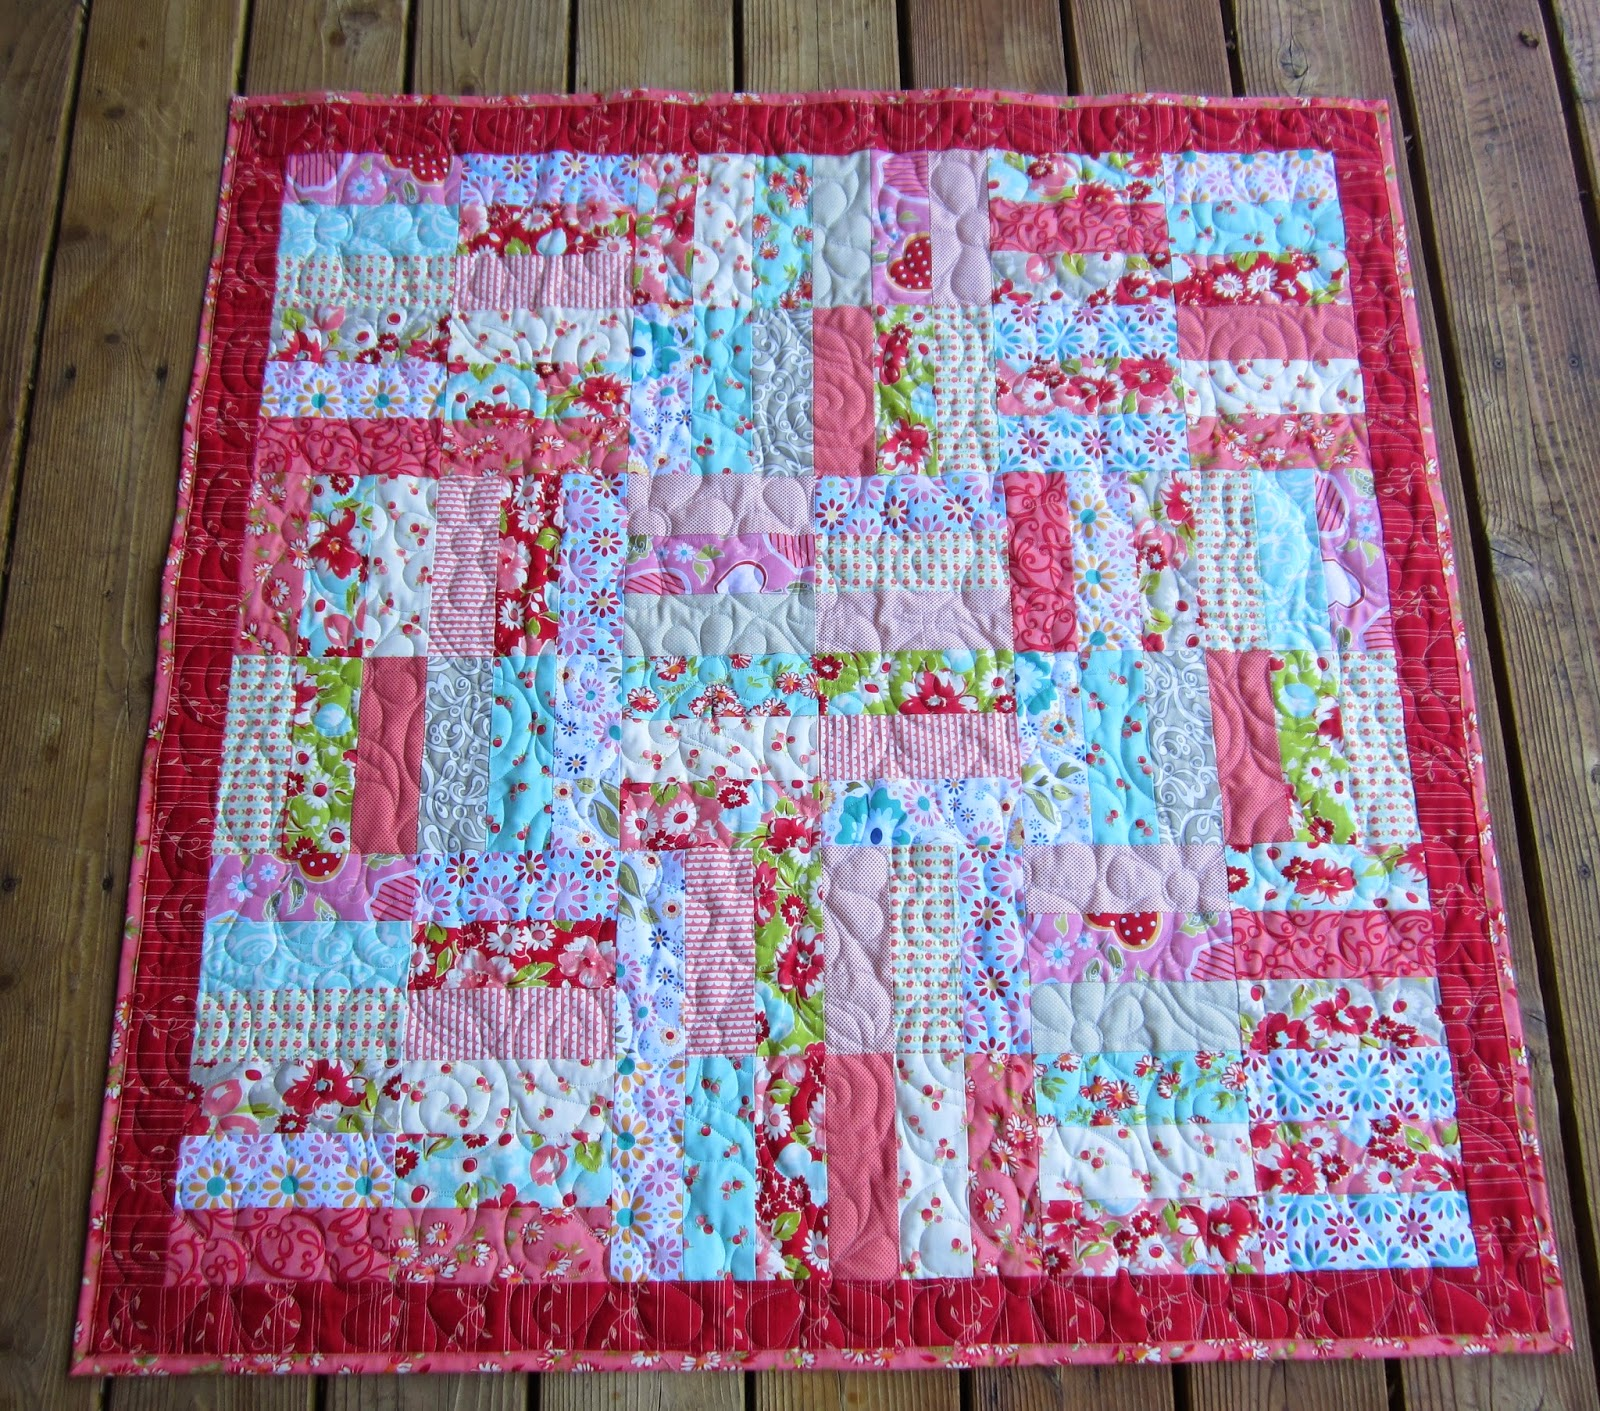 Quilting Blogs What Are Quilters Blogging About Today